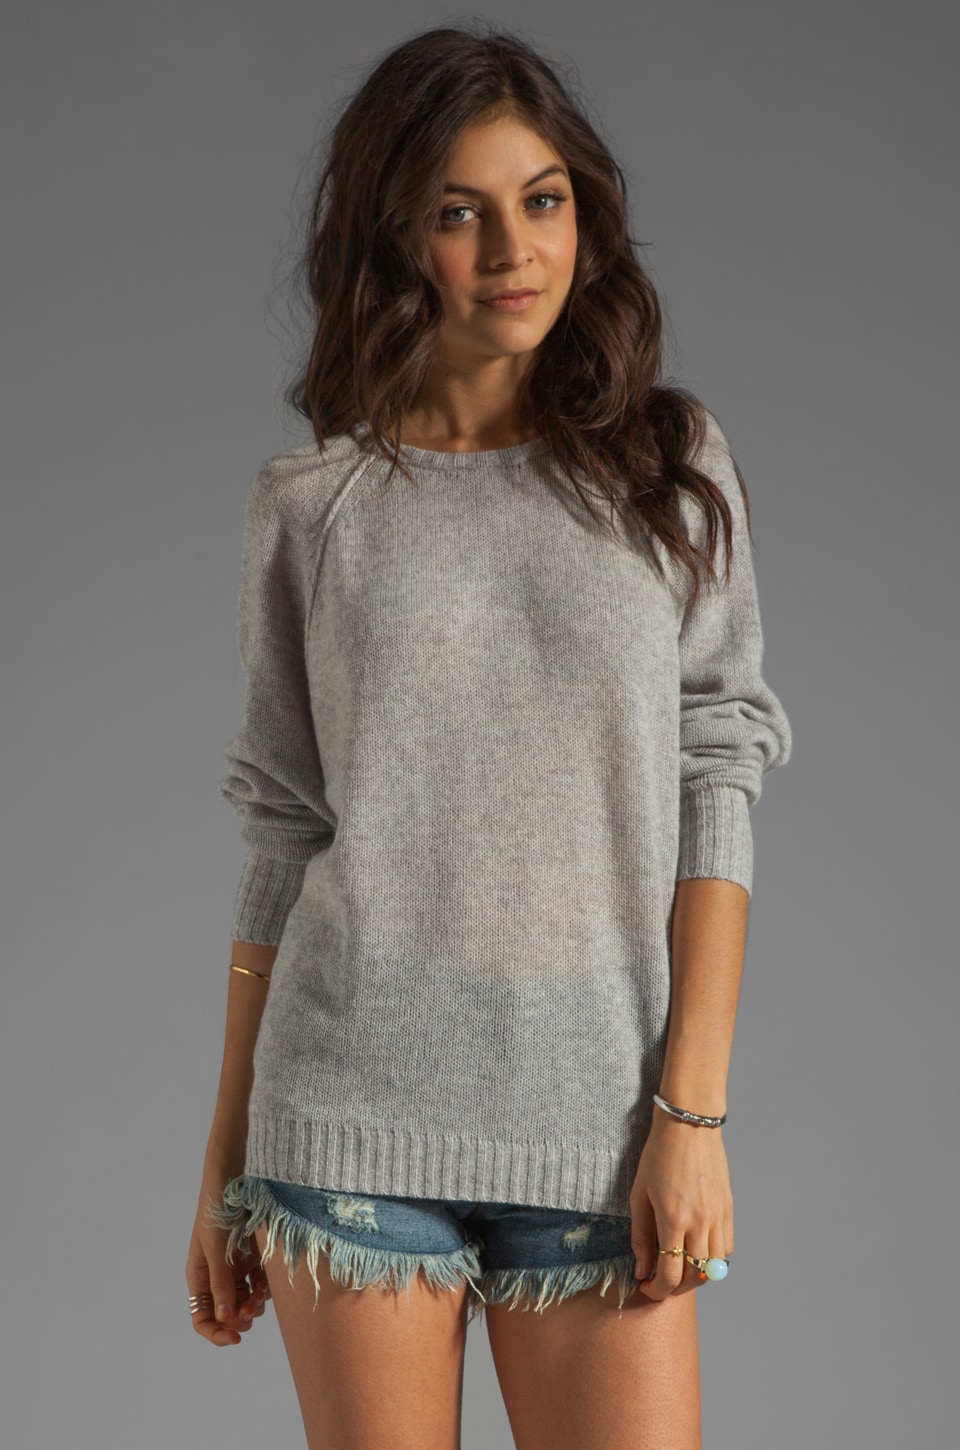 Autumn Cashmere Relaxed Fit Sweater in Fog